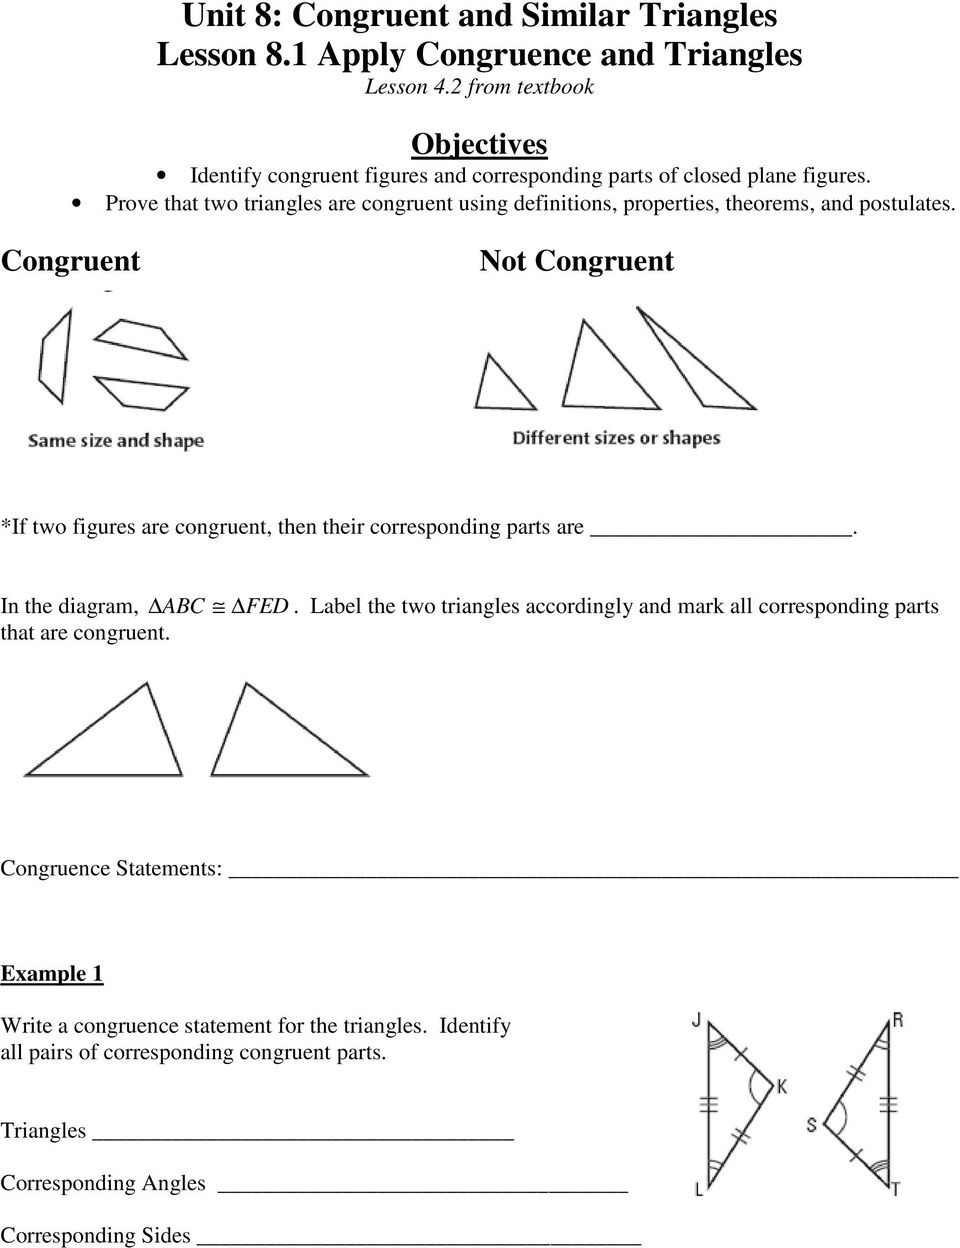 Similar Figures Worksheet Answer Key Unit 8 Congruent and Similar Triangles Lesson 8 1 Apply